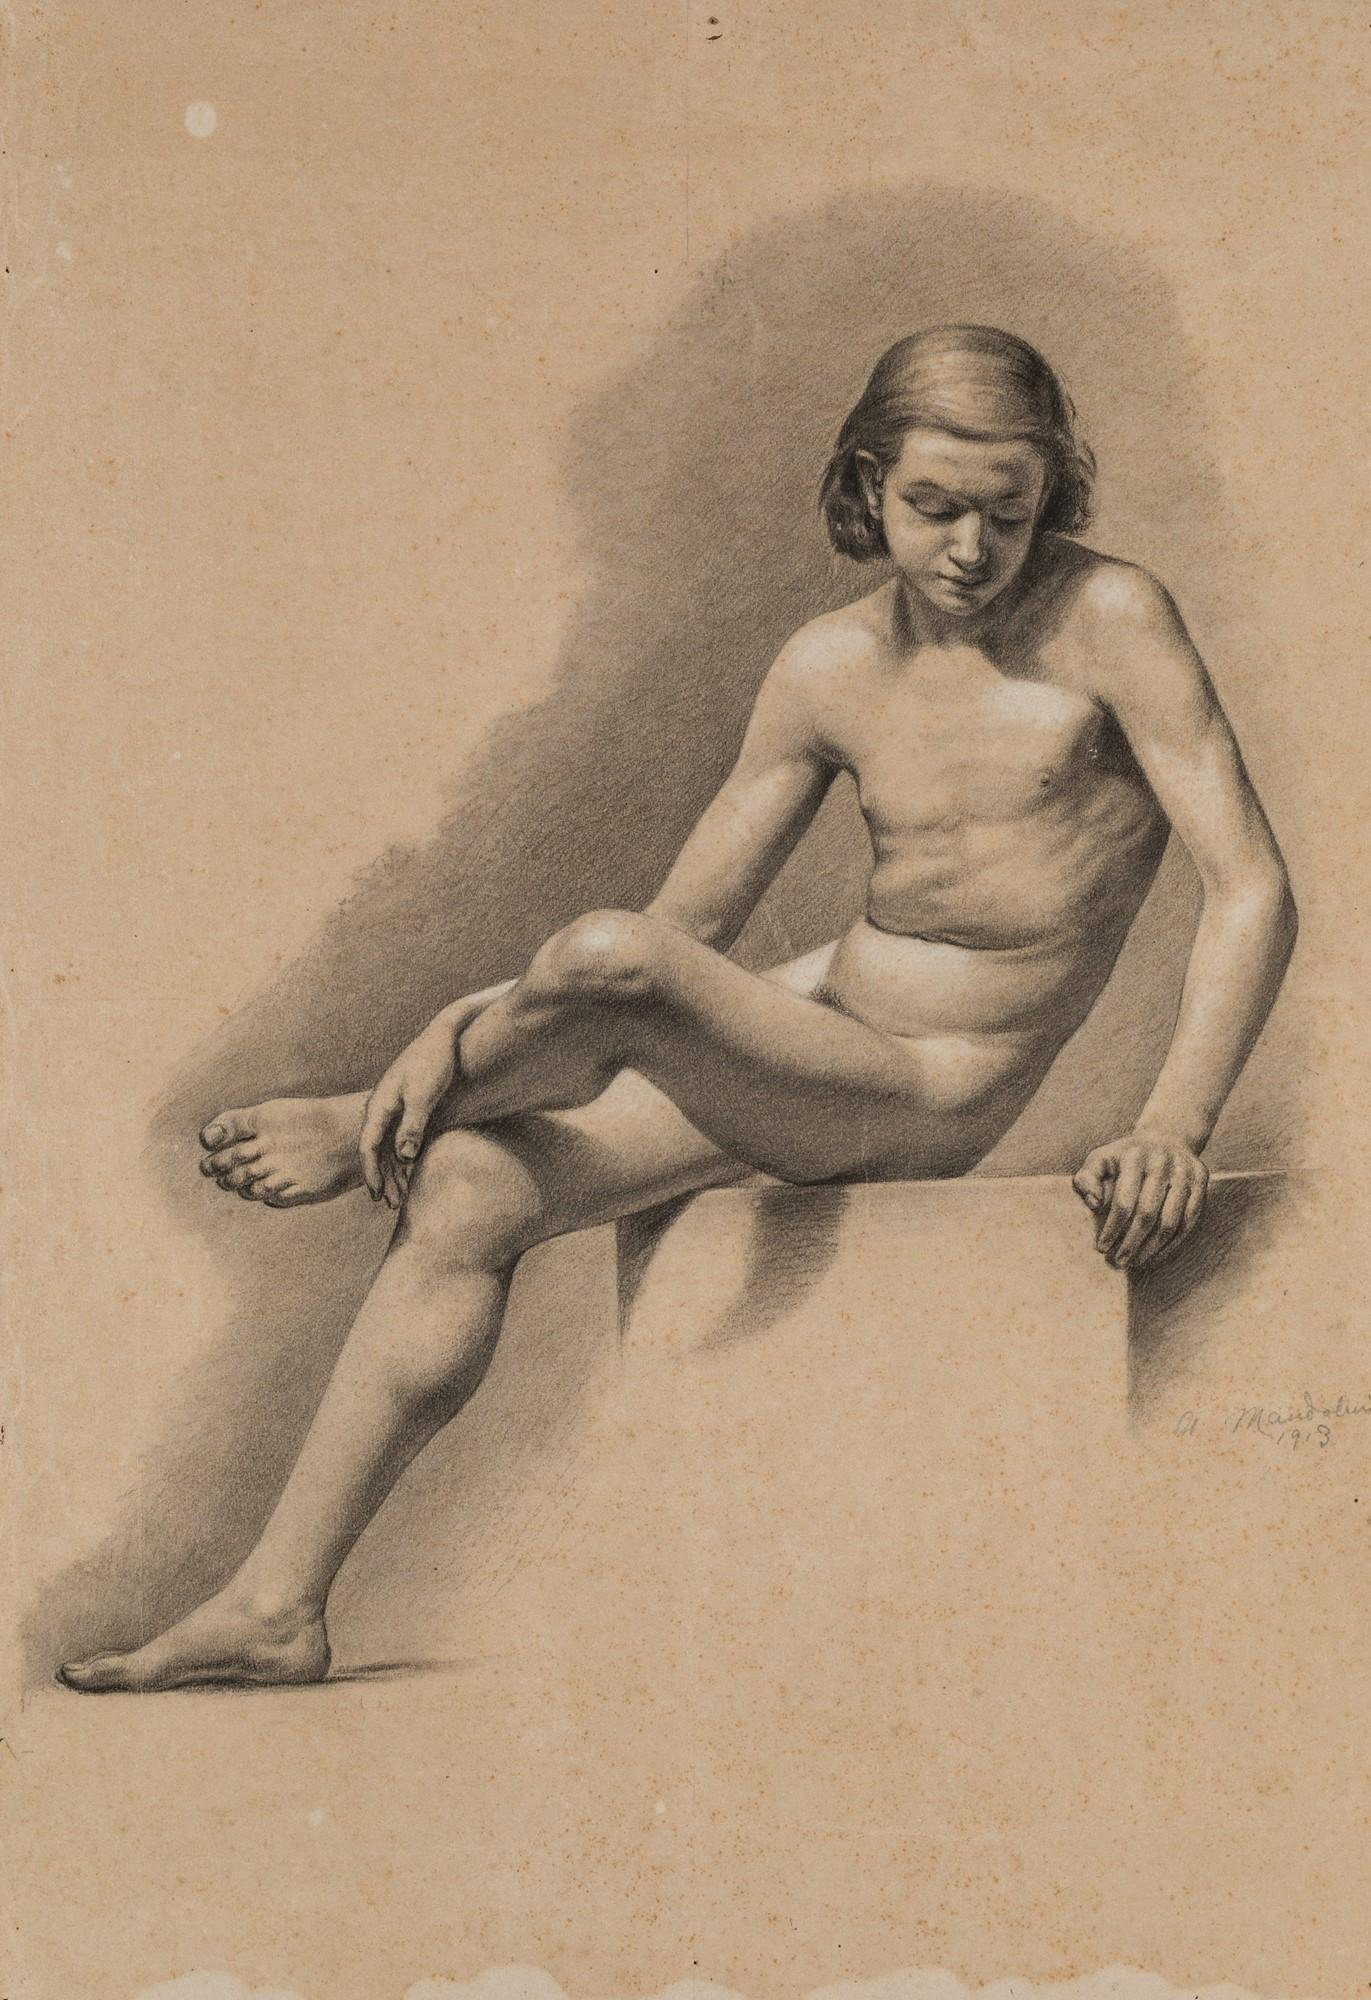 Fourteen drawings with studies on human figure